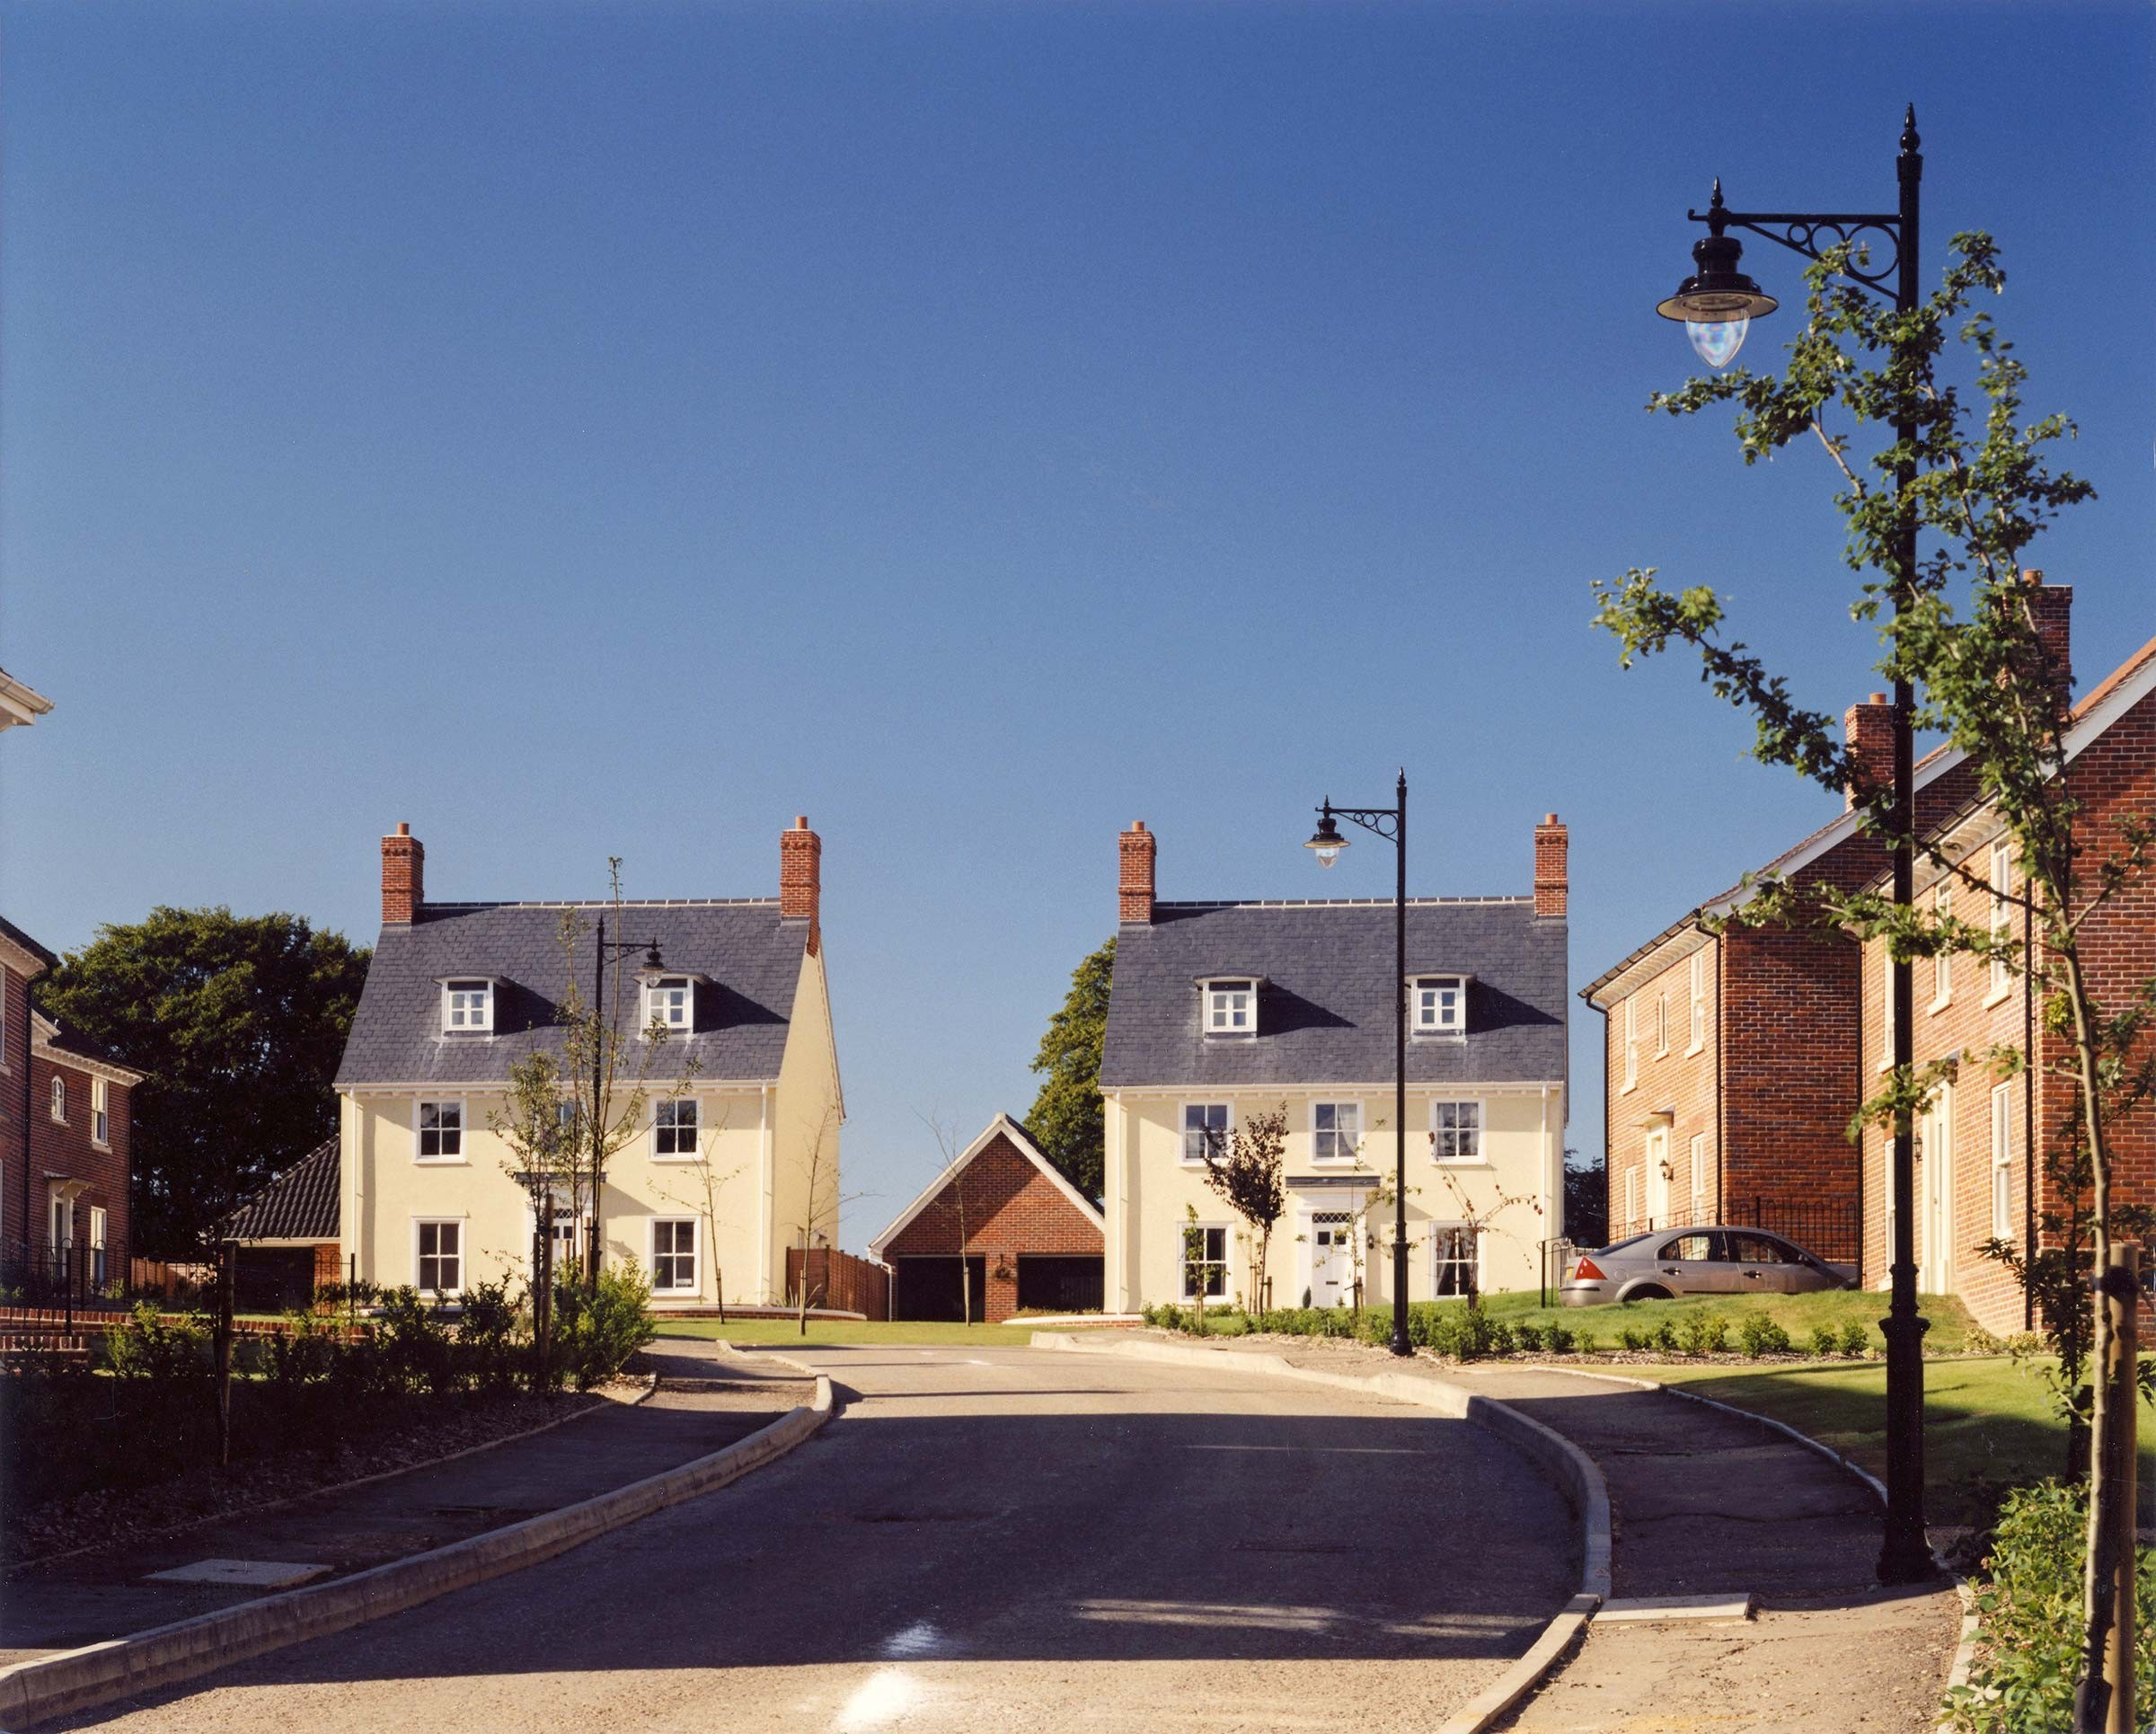 New housing at Trowse Newton, Norfolk